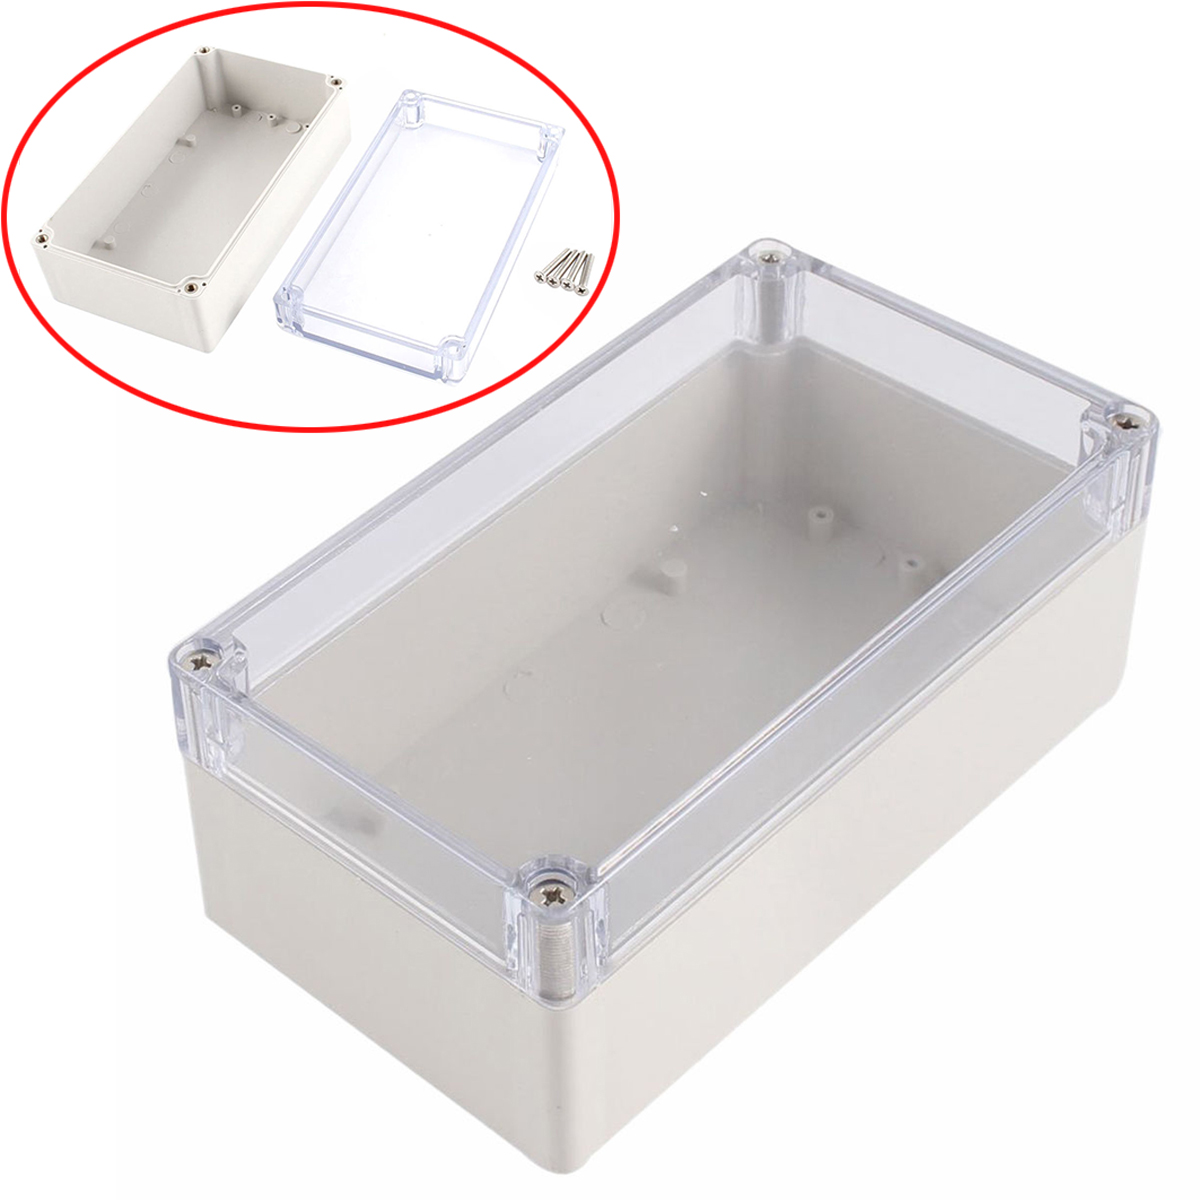 High Quality Waterproof Enclosure Case Clear Cover Plastic DIY Electronic Project Instrument Box 158mmx90mmx60mm 1pc waterproof enclosure box plastic electronic project instrument case 200x120x75mm